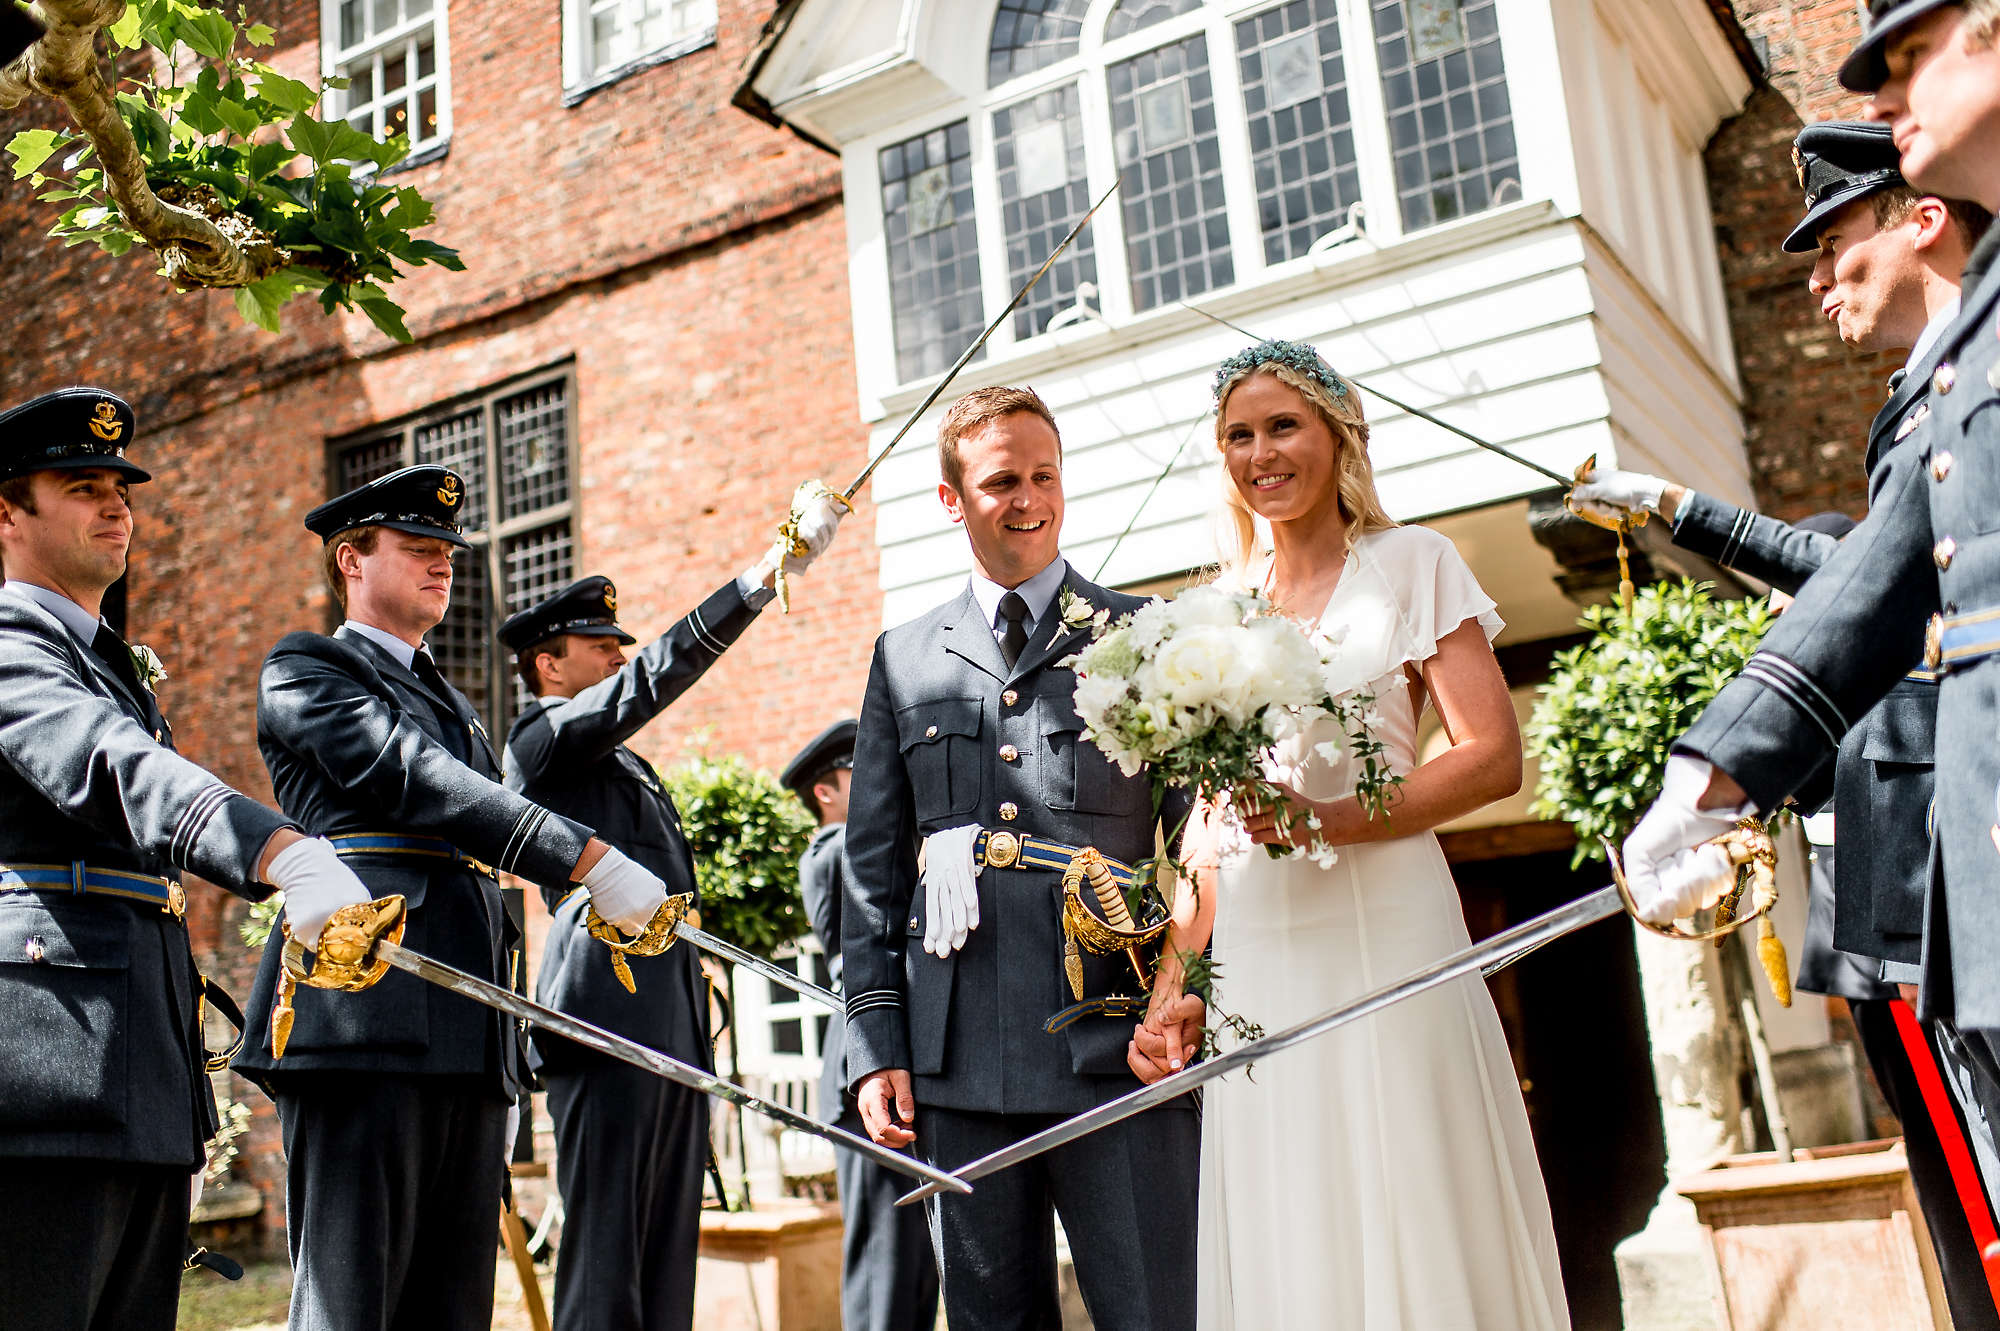 Grays court york wedding 0008